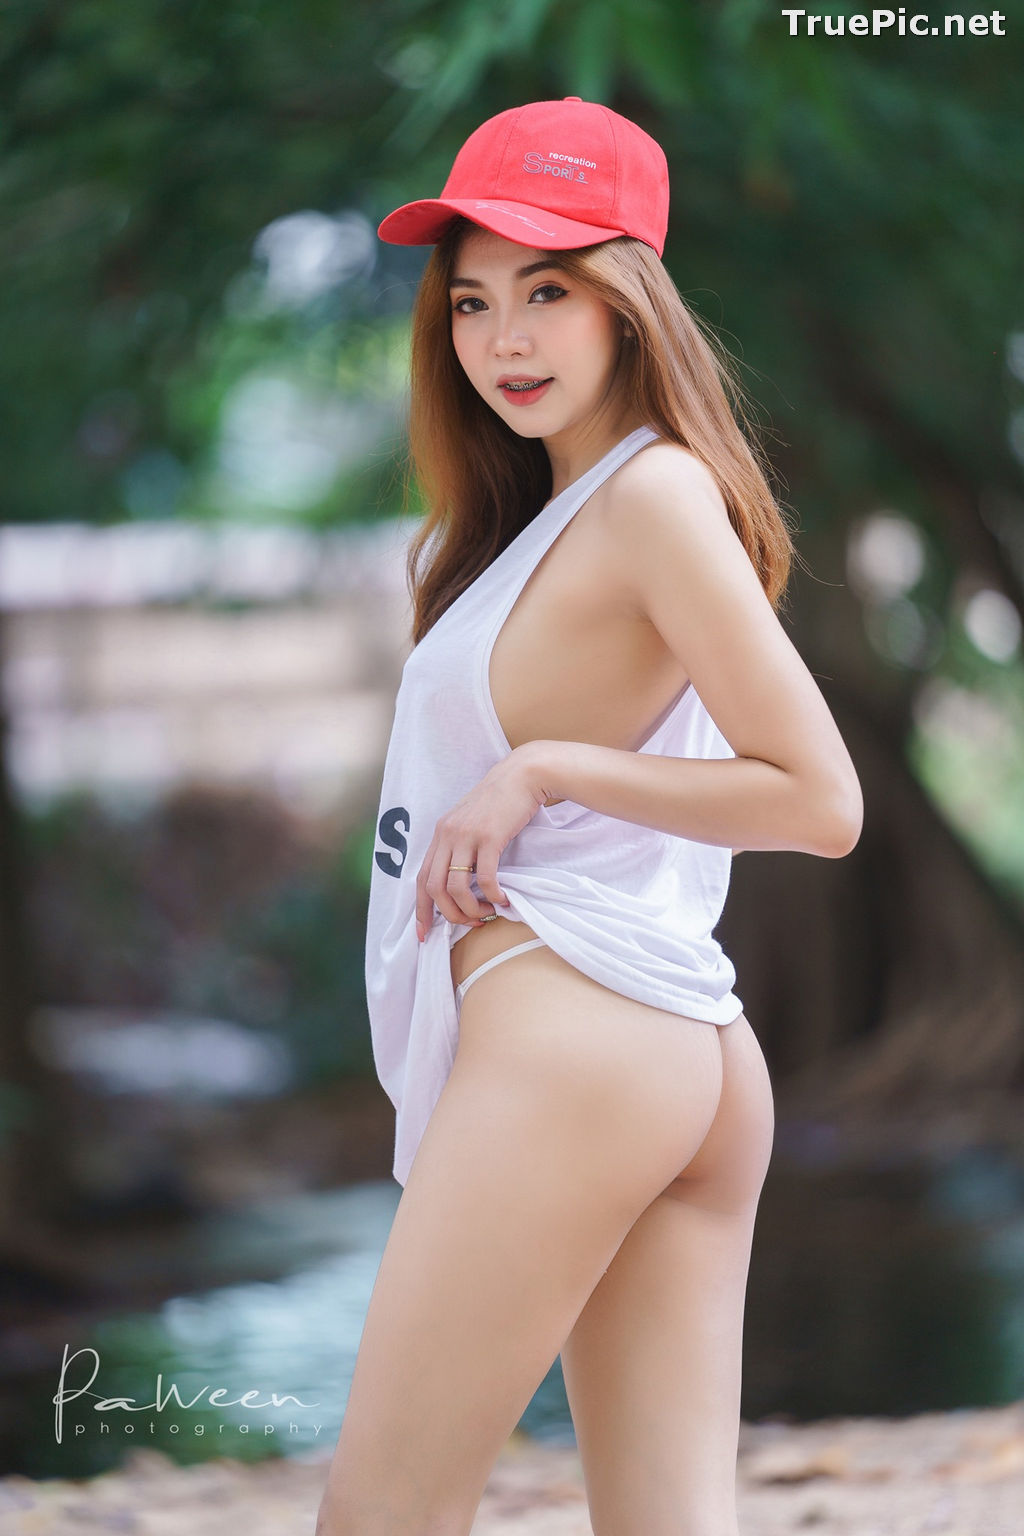 Image Thailand Model - Sirirut Thananet - Beautiful Angel and Small Stream - TruePic.net - Picture-25